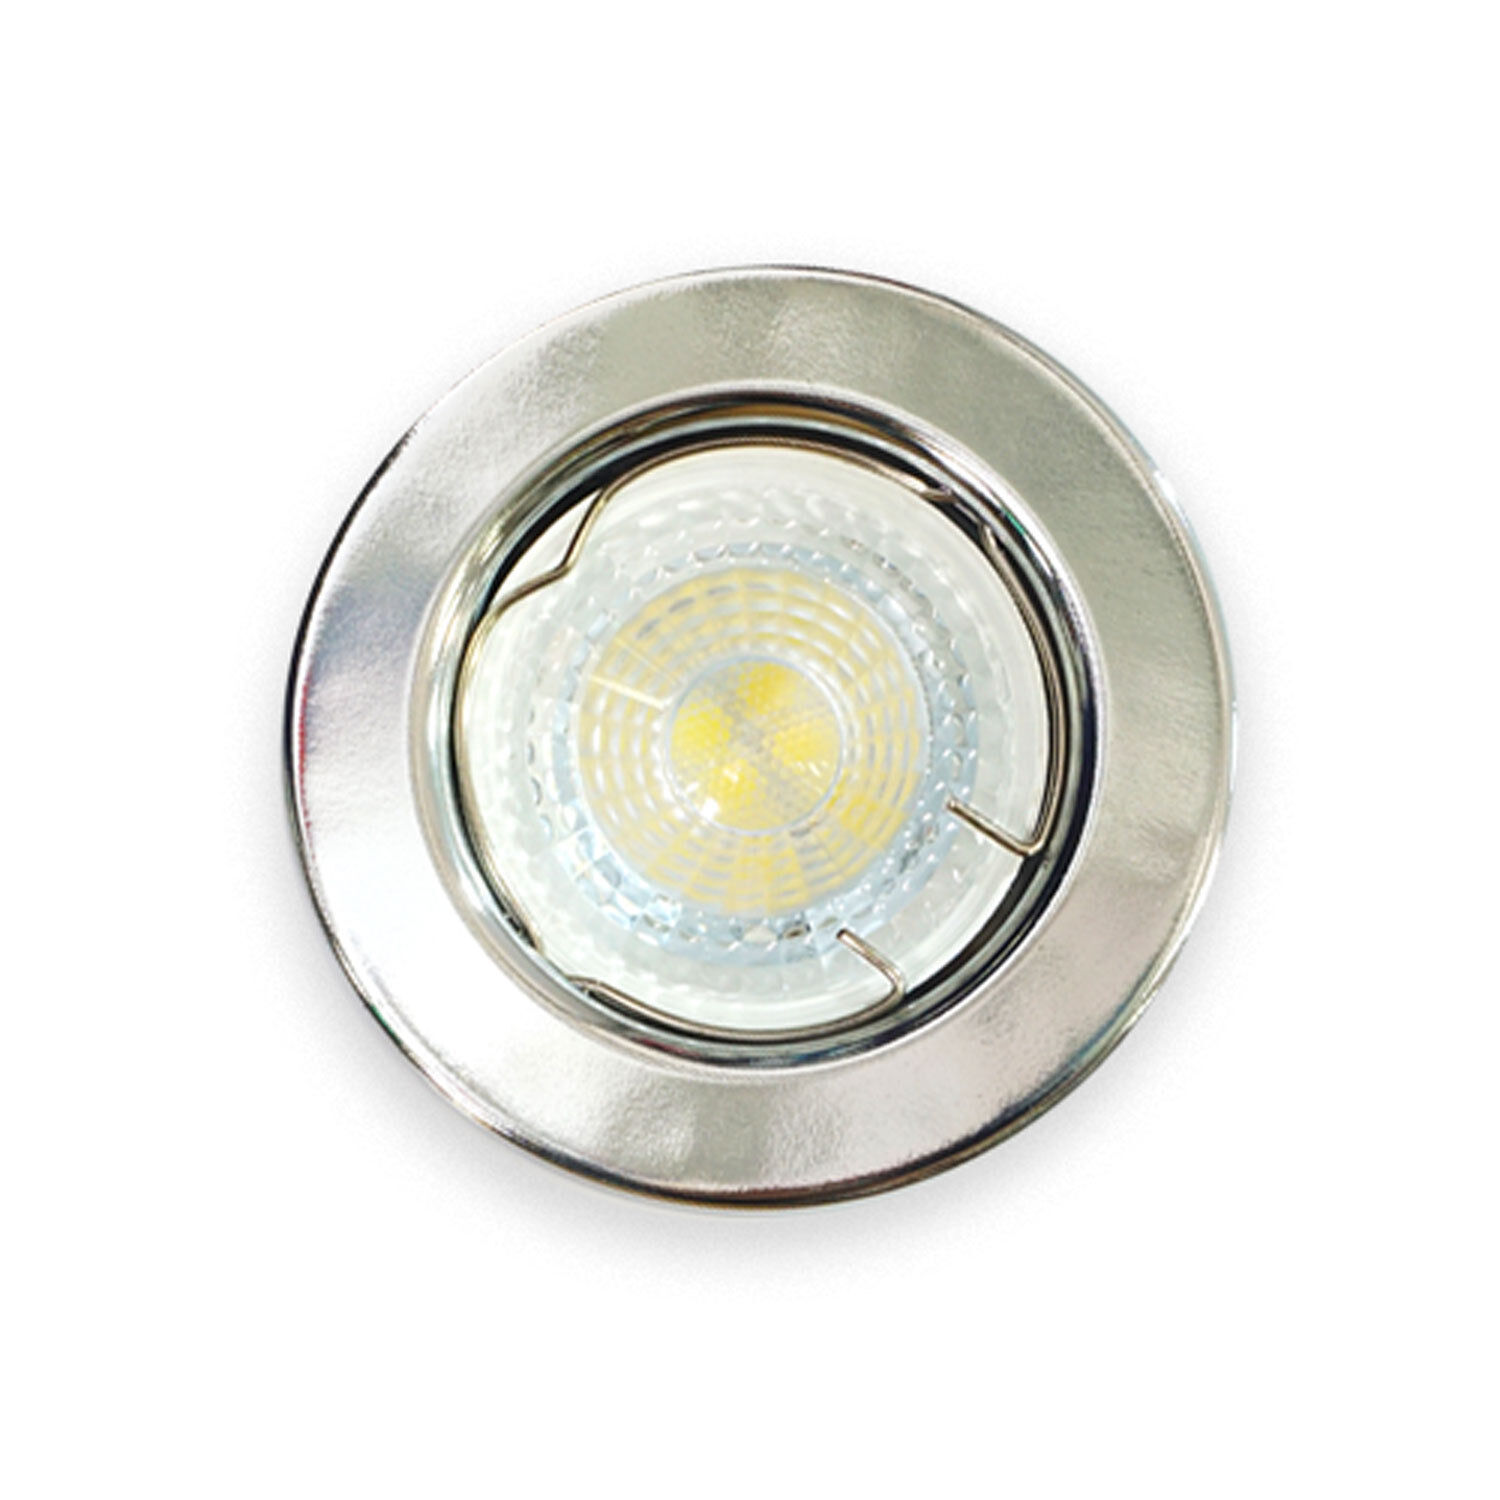 Fixed Shiny Chrome Gu10 Ceiling Downlight Spot Light